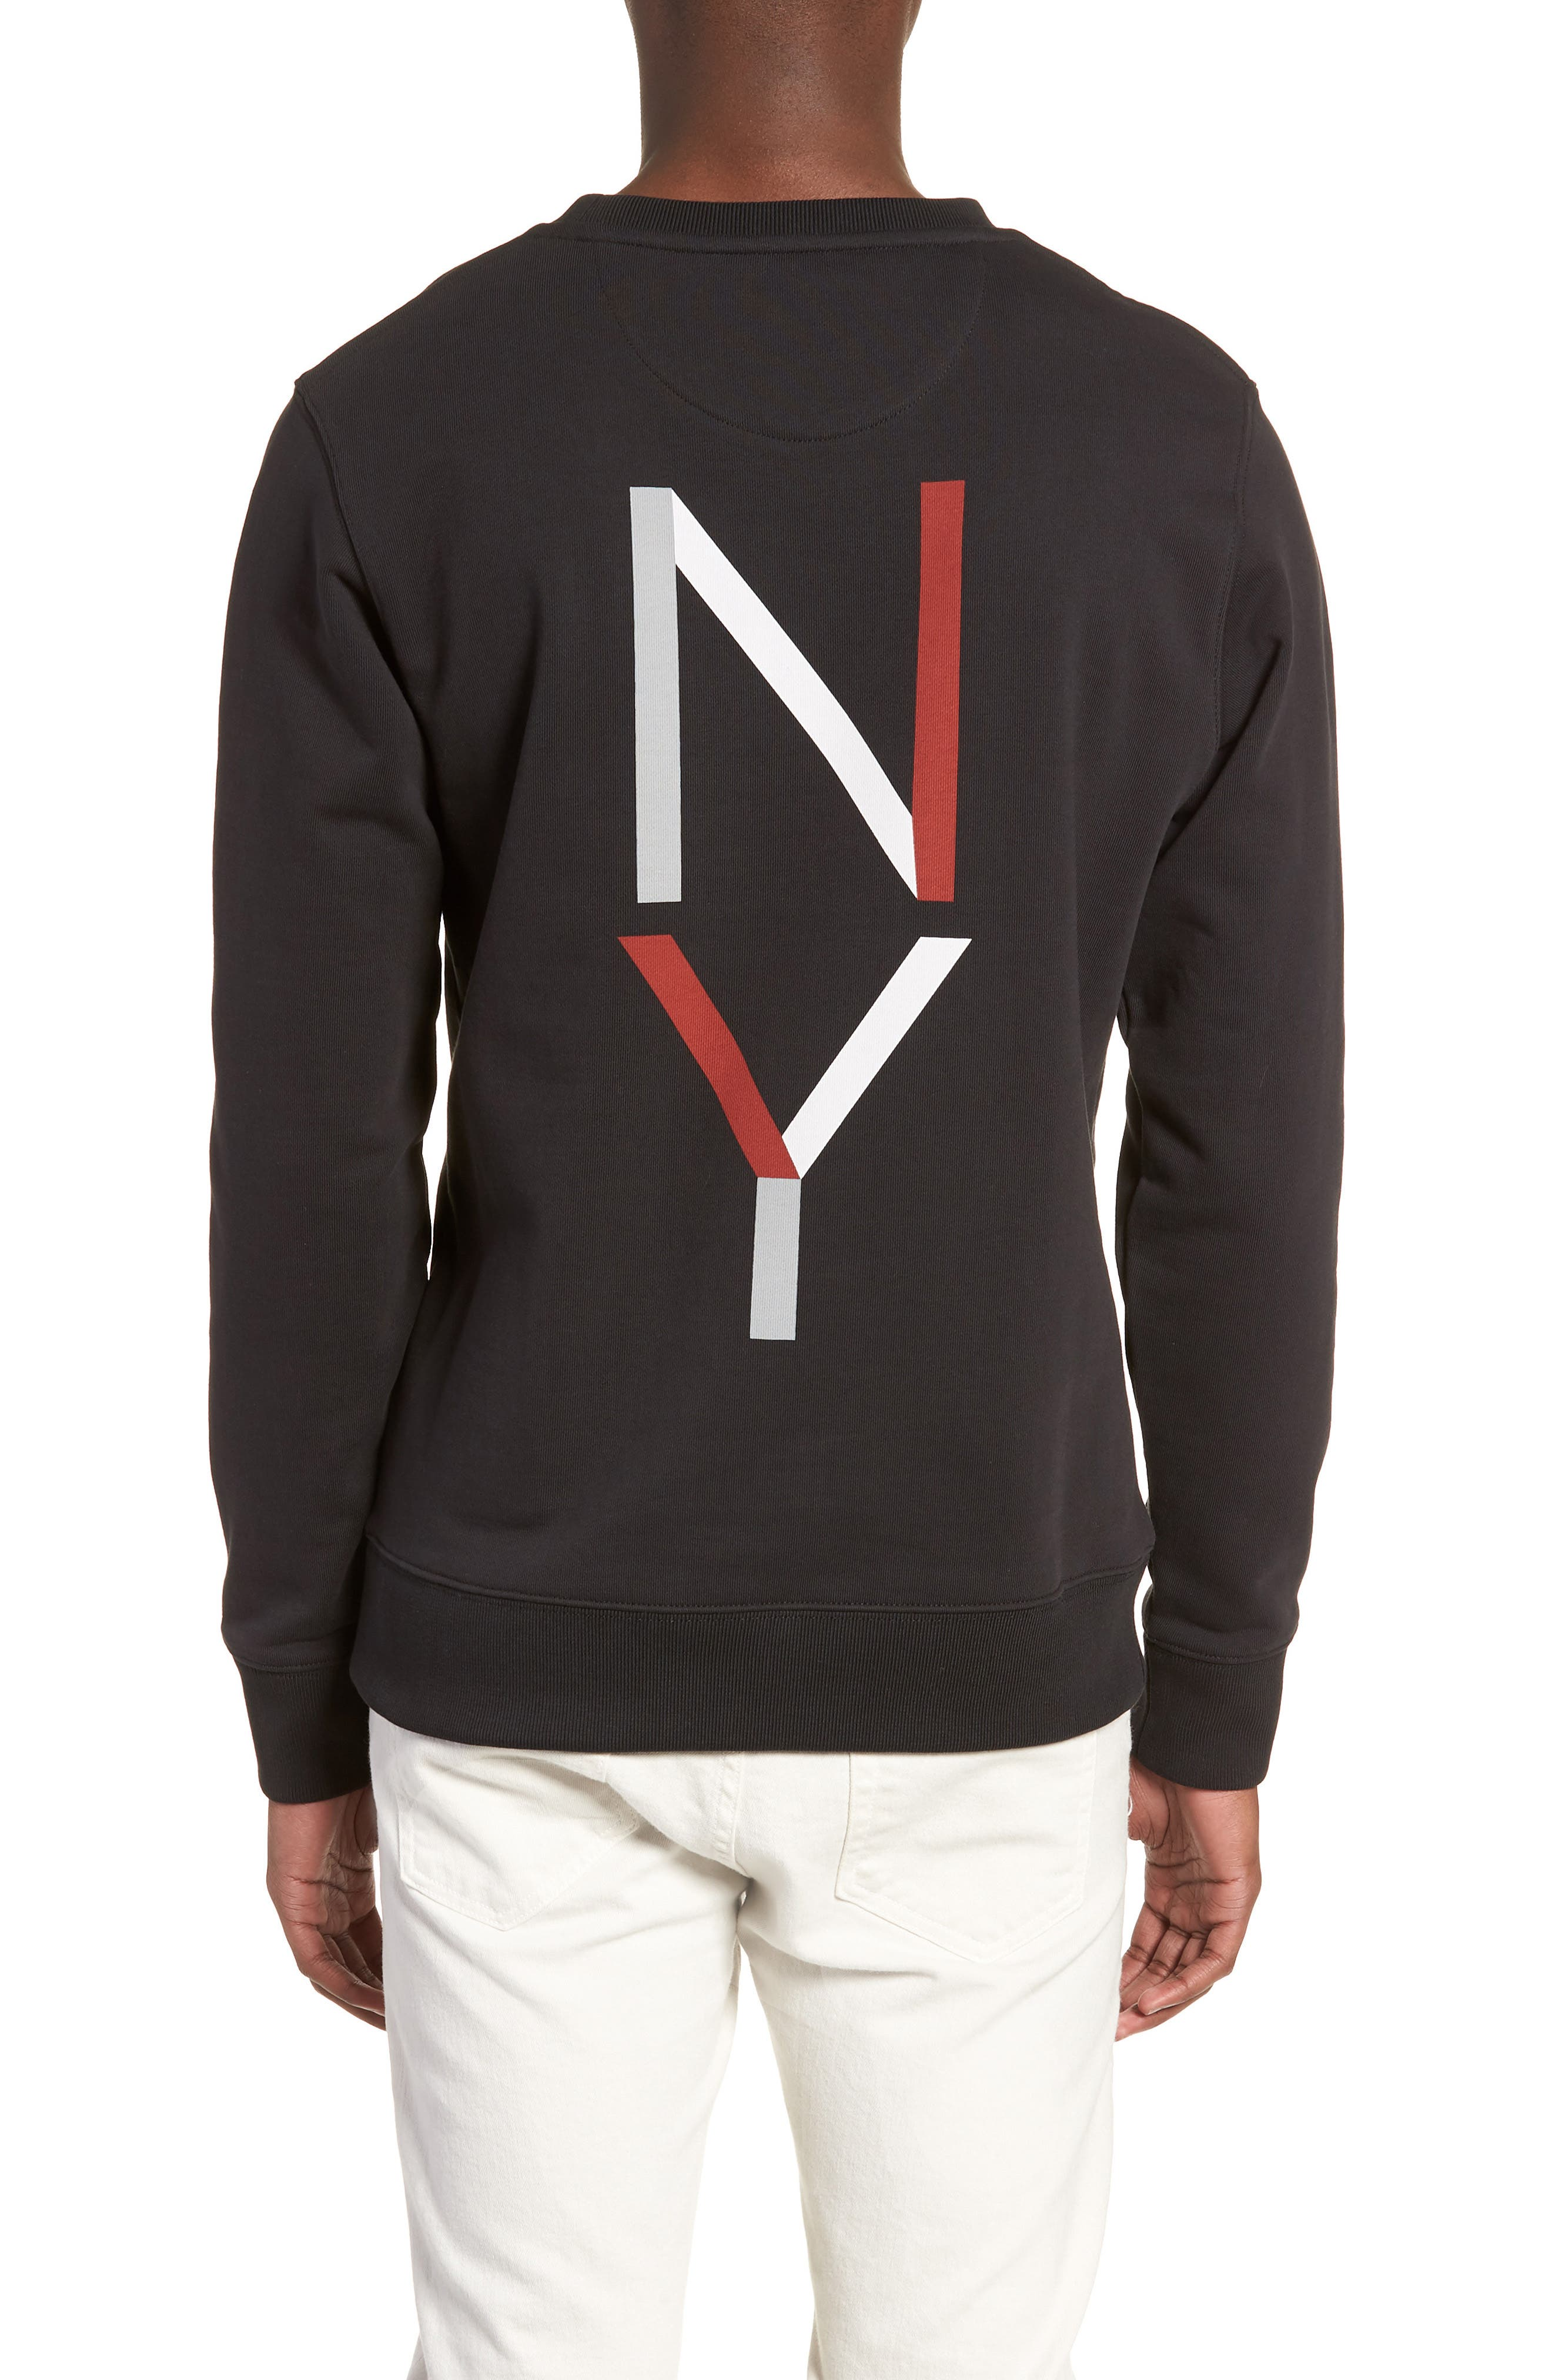 Bowery NY Sweatshirt,                             Alternate thumbnail 2, color,                             Black